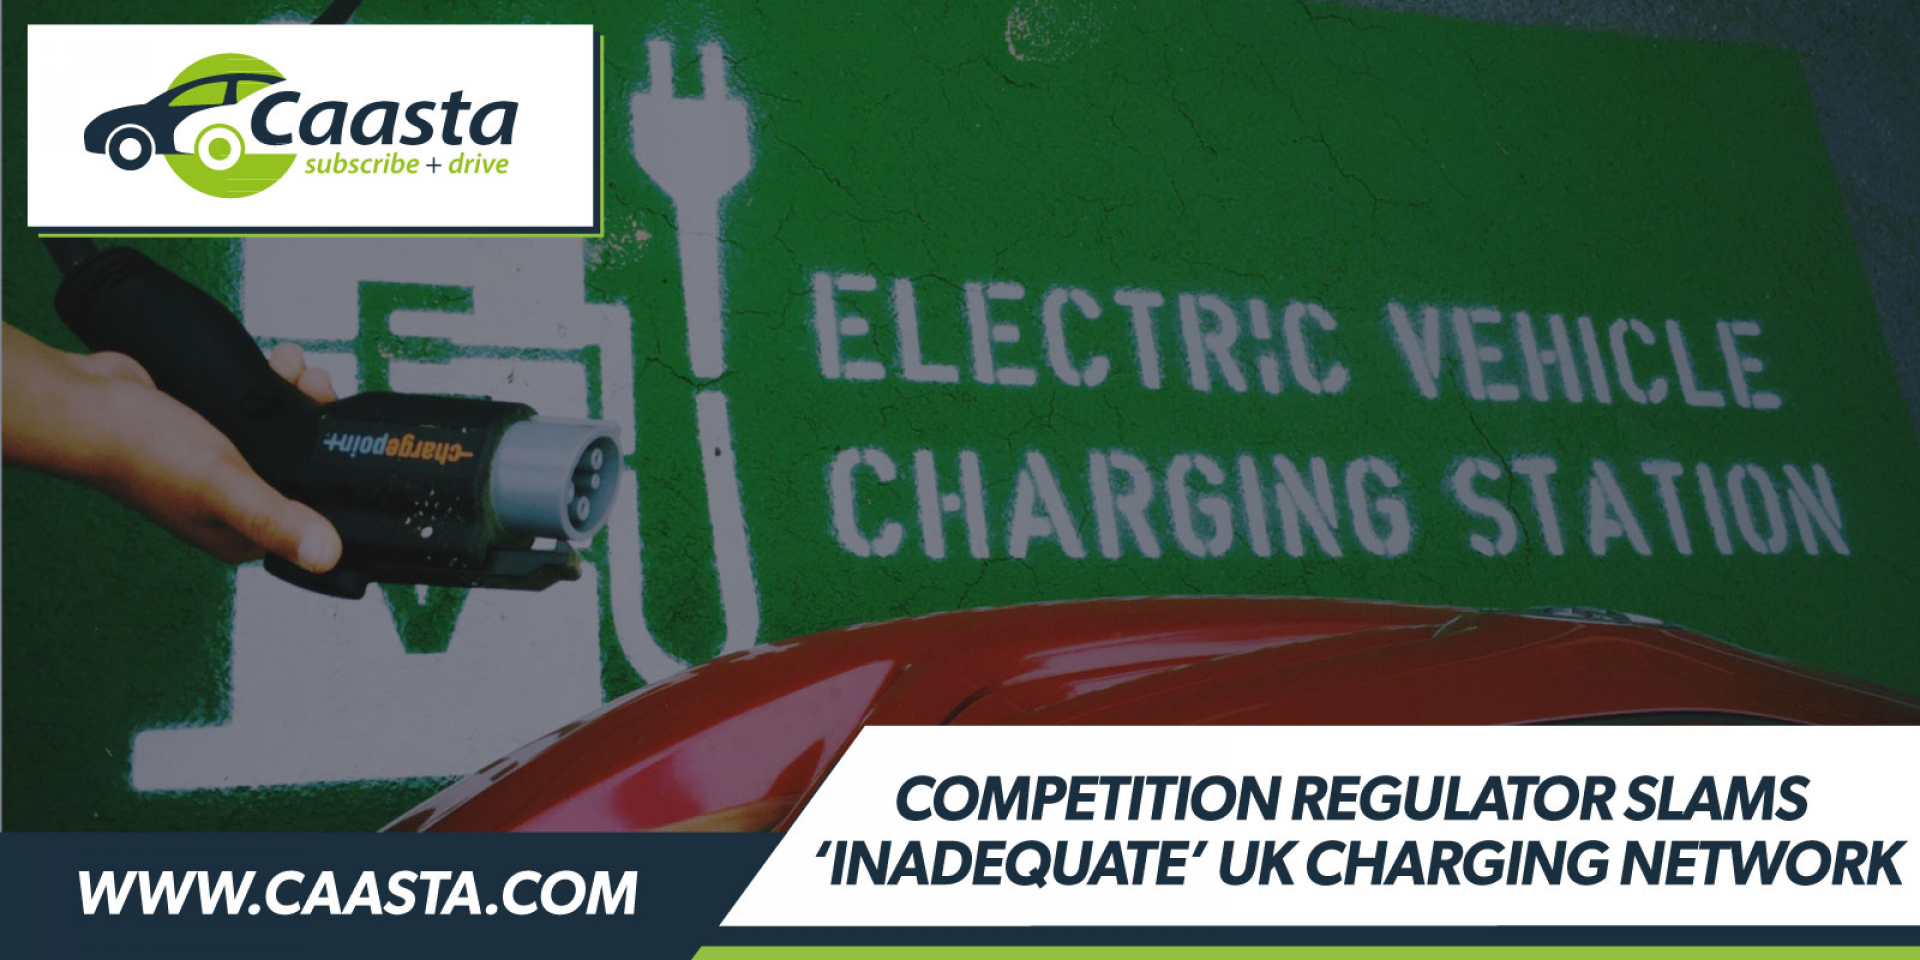 Competition regulator slams 'inadequate' UK charging network on local roads and in rural areas